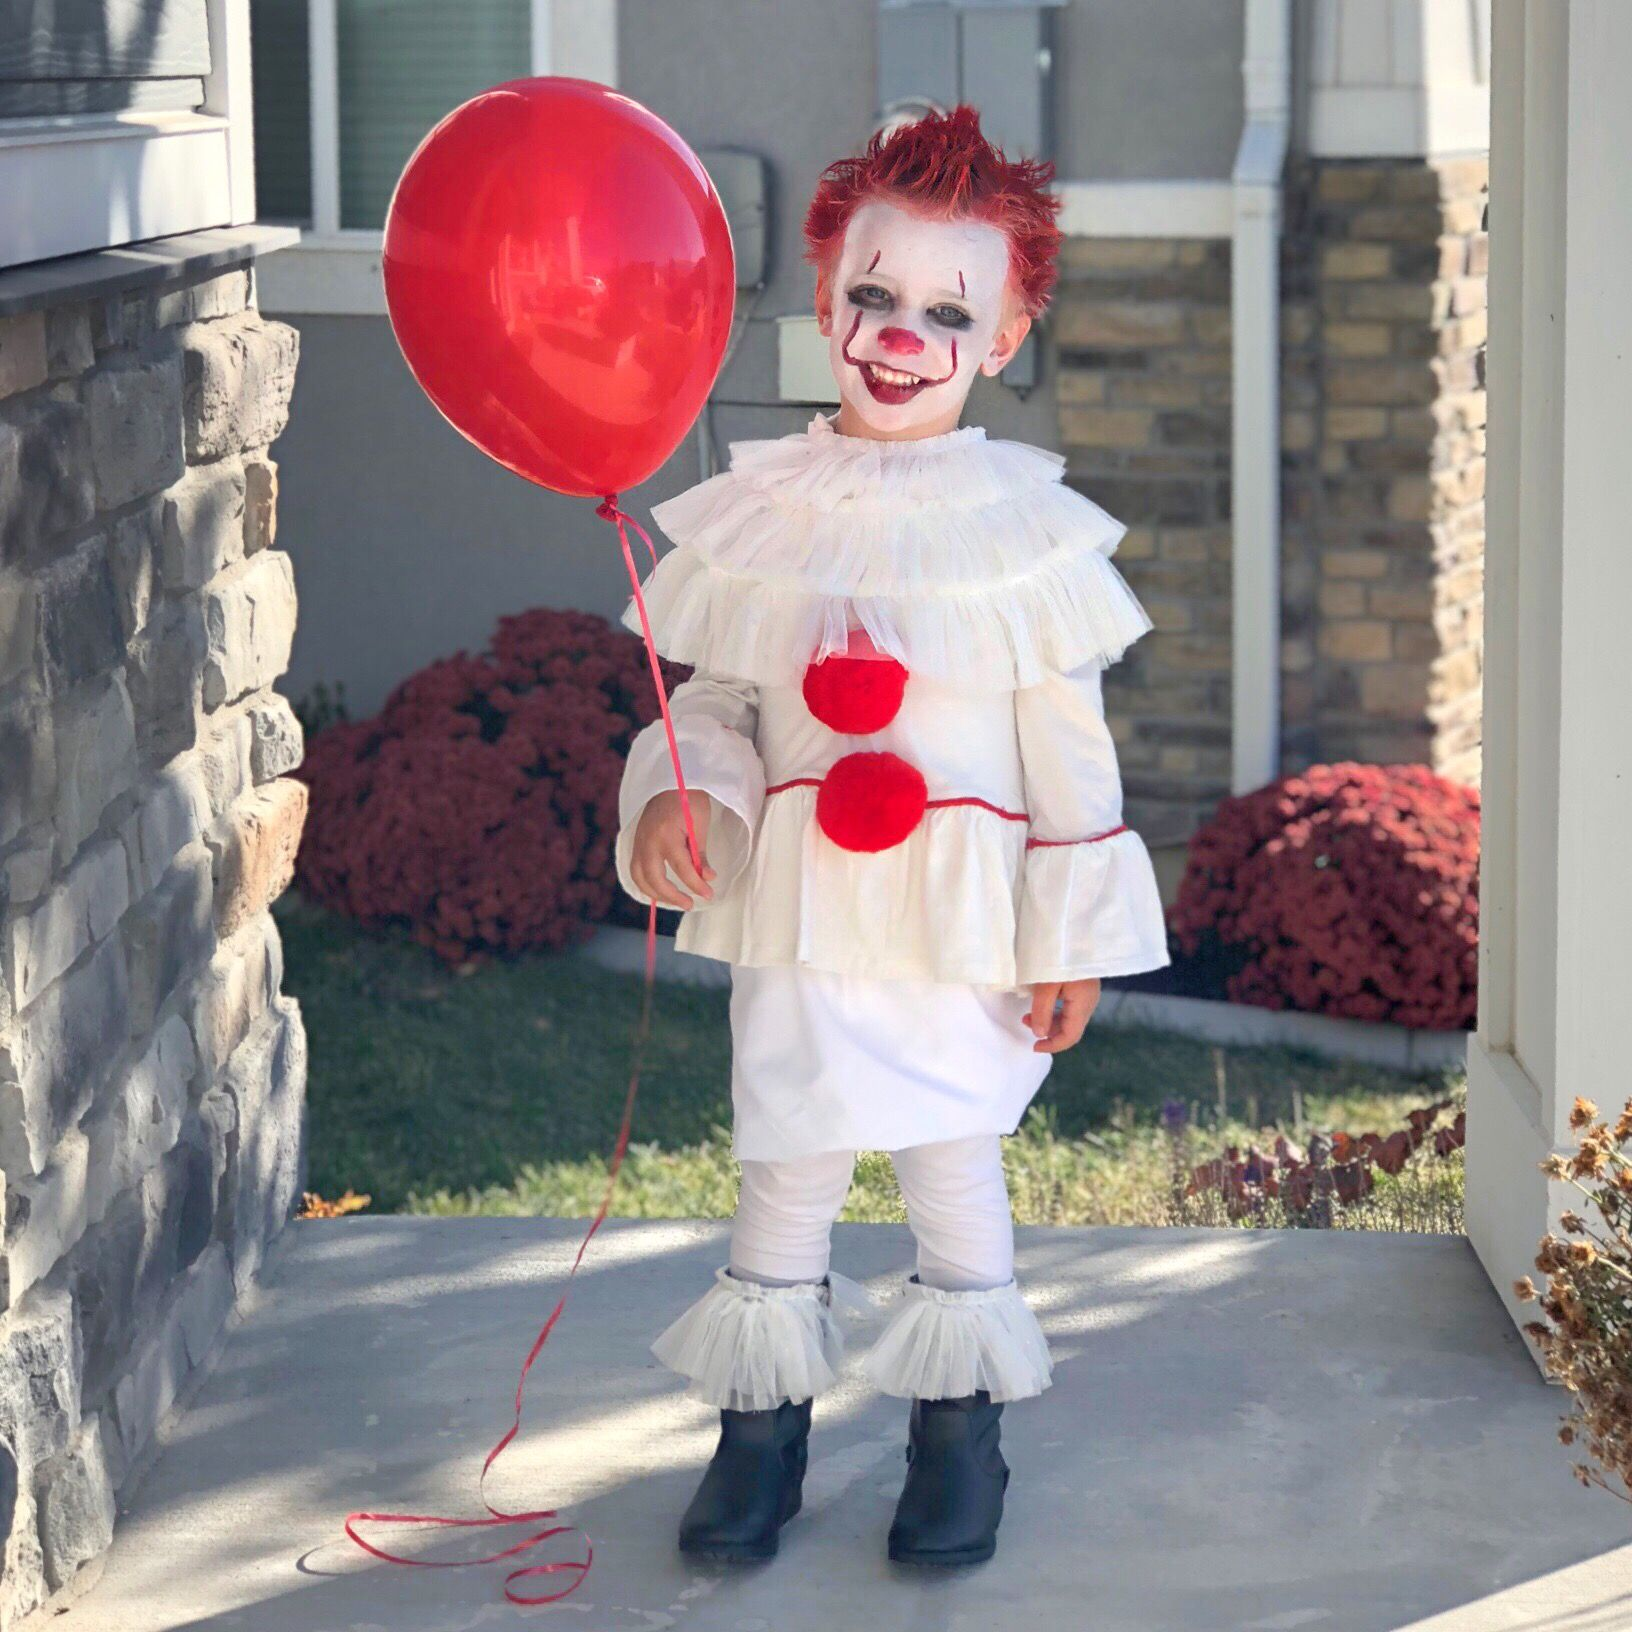 Pennywise costume kids. It clown